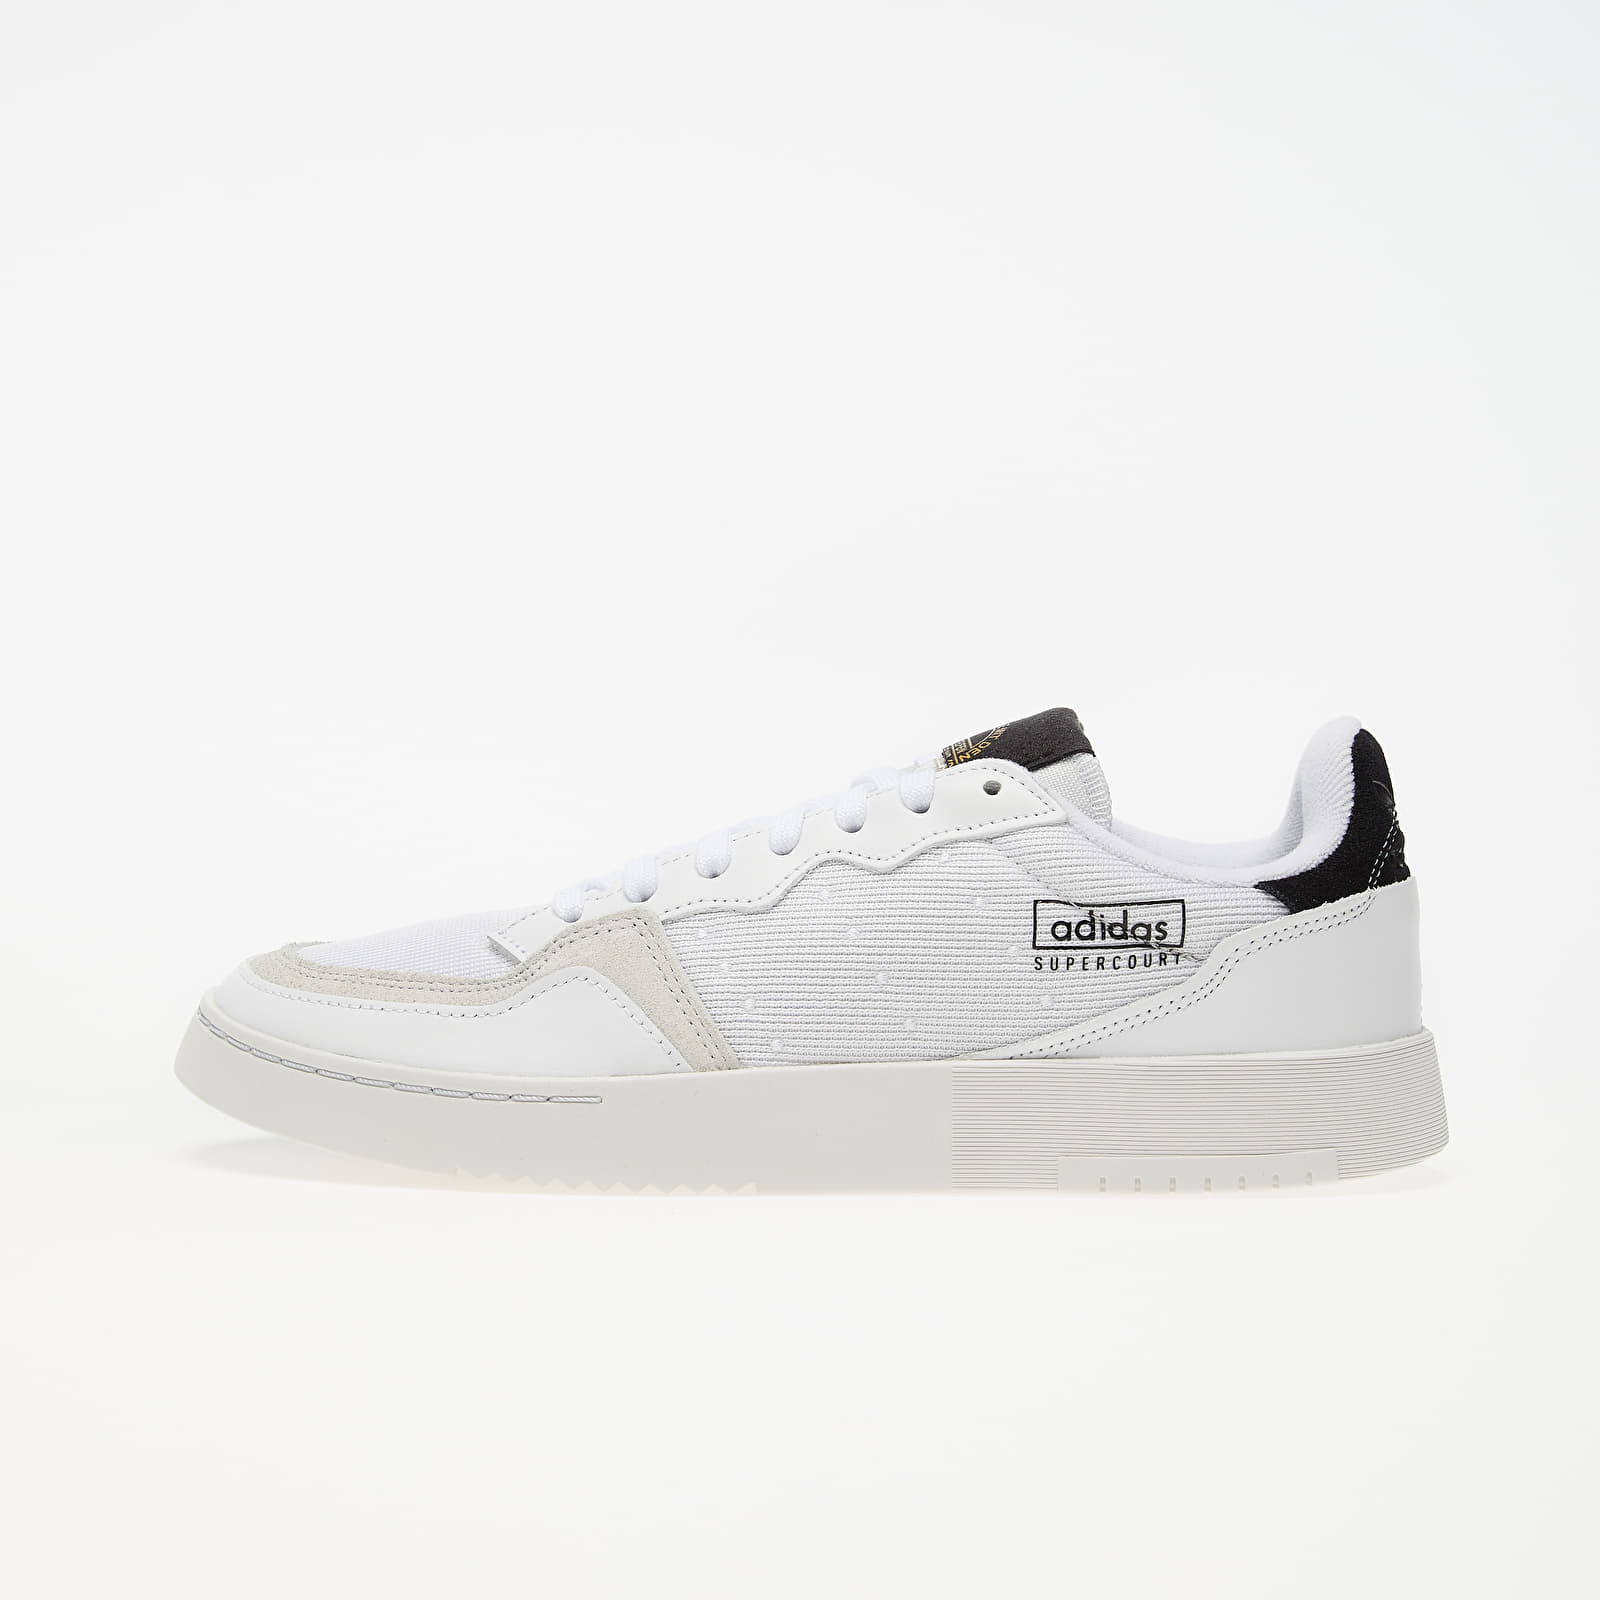 Чоловіче взуття adidas Supercourt Ftw White/ Ftw White/ Core Black